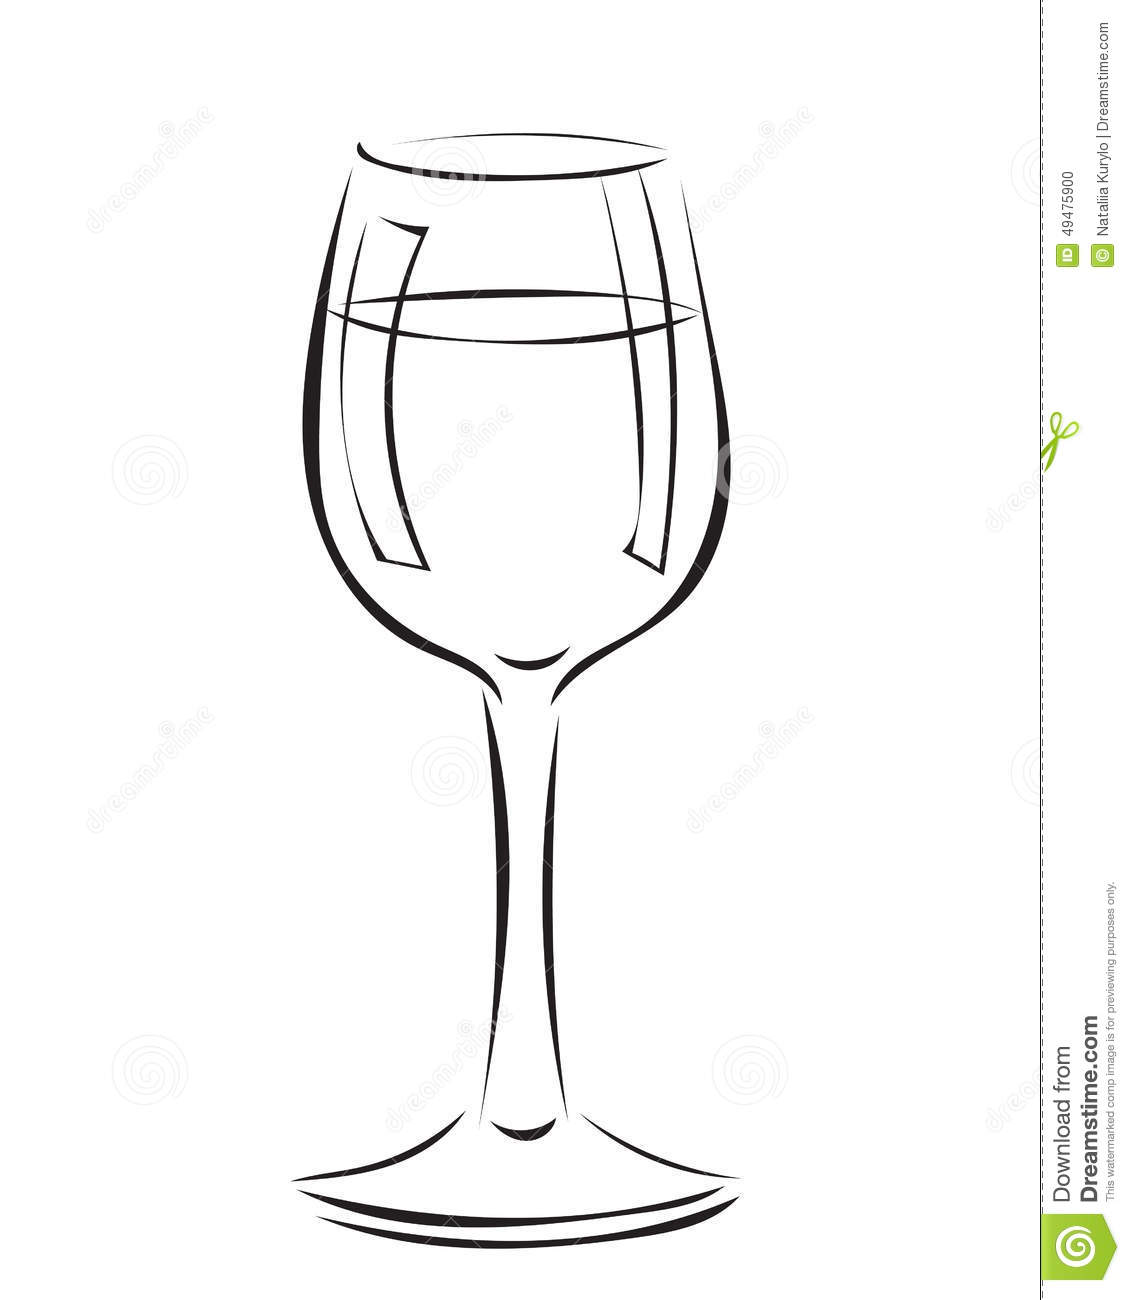 Sycodrops Beerfest Eliquids together with Mylinemanspoilsmevinyldecal likewise Stock Illustration Wine Glass Vector Sketch Doodle Image49475900 together with False Ceiling 37849487 likewise Coloring Pages Of Crosses. on fire glass